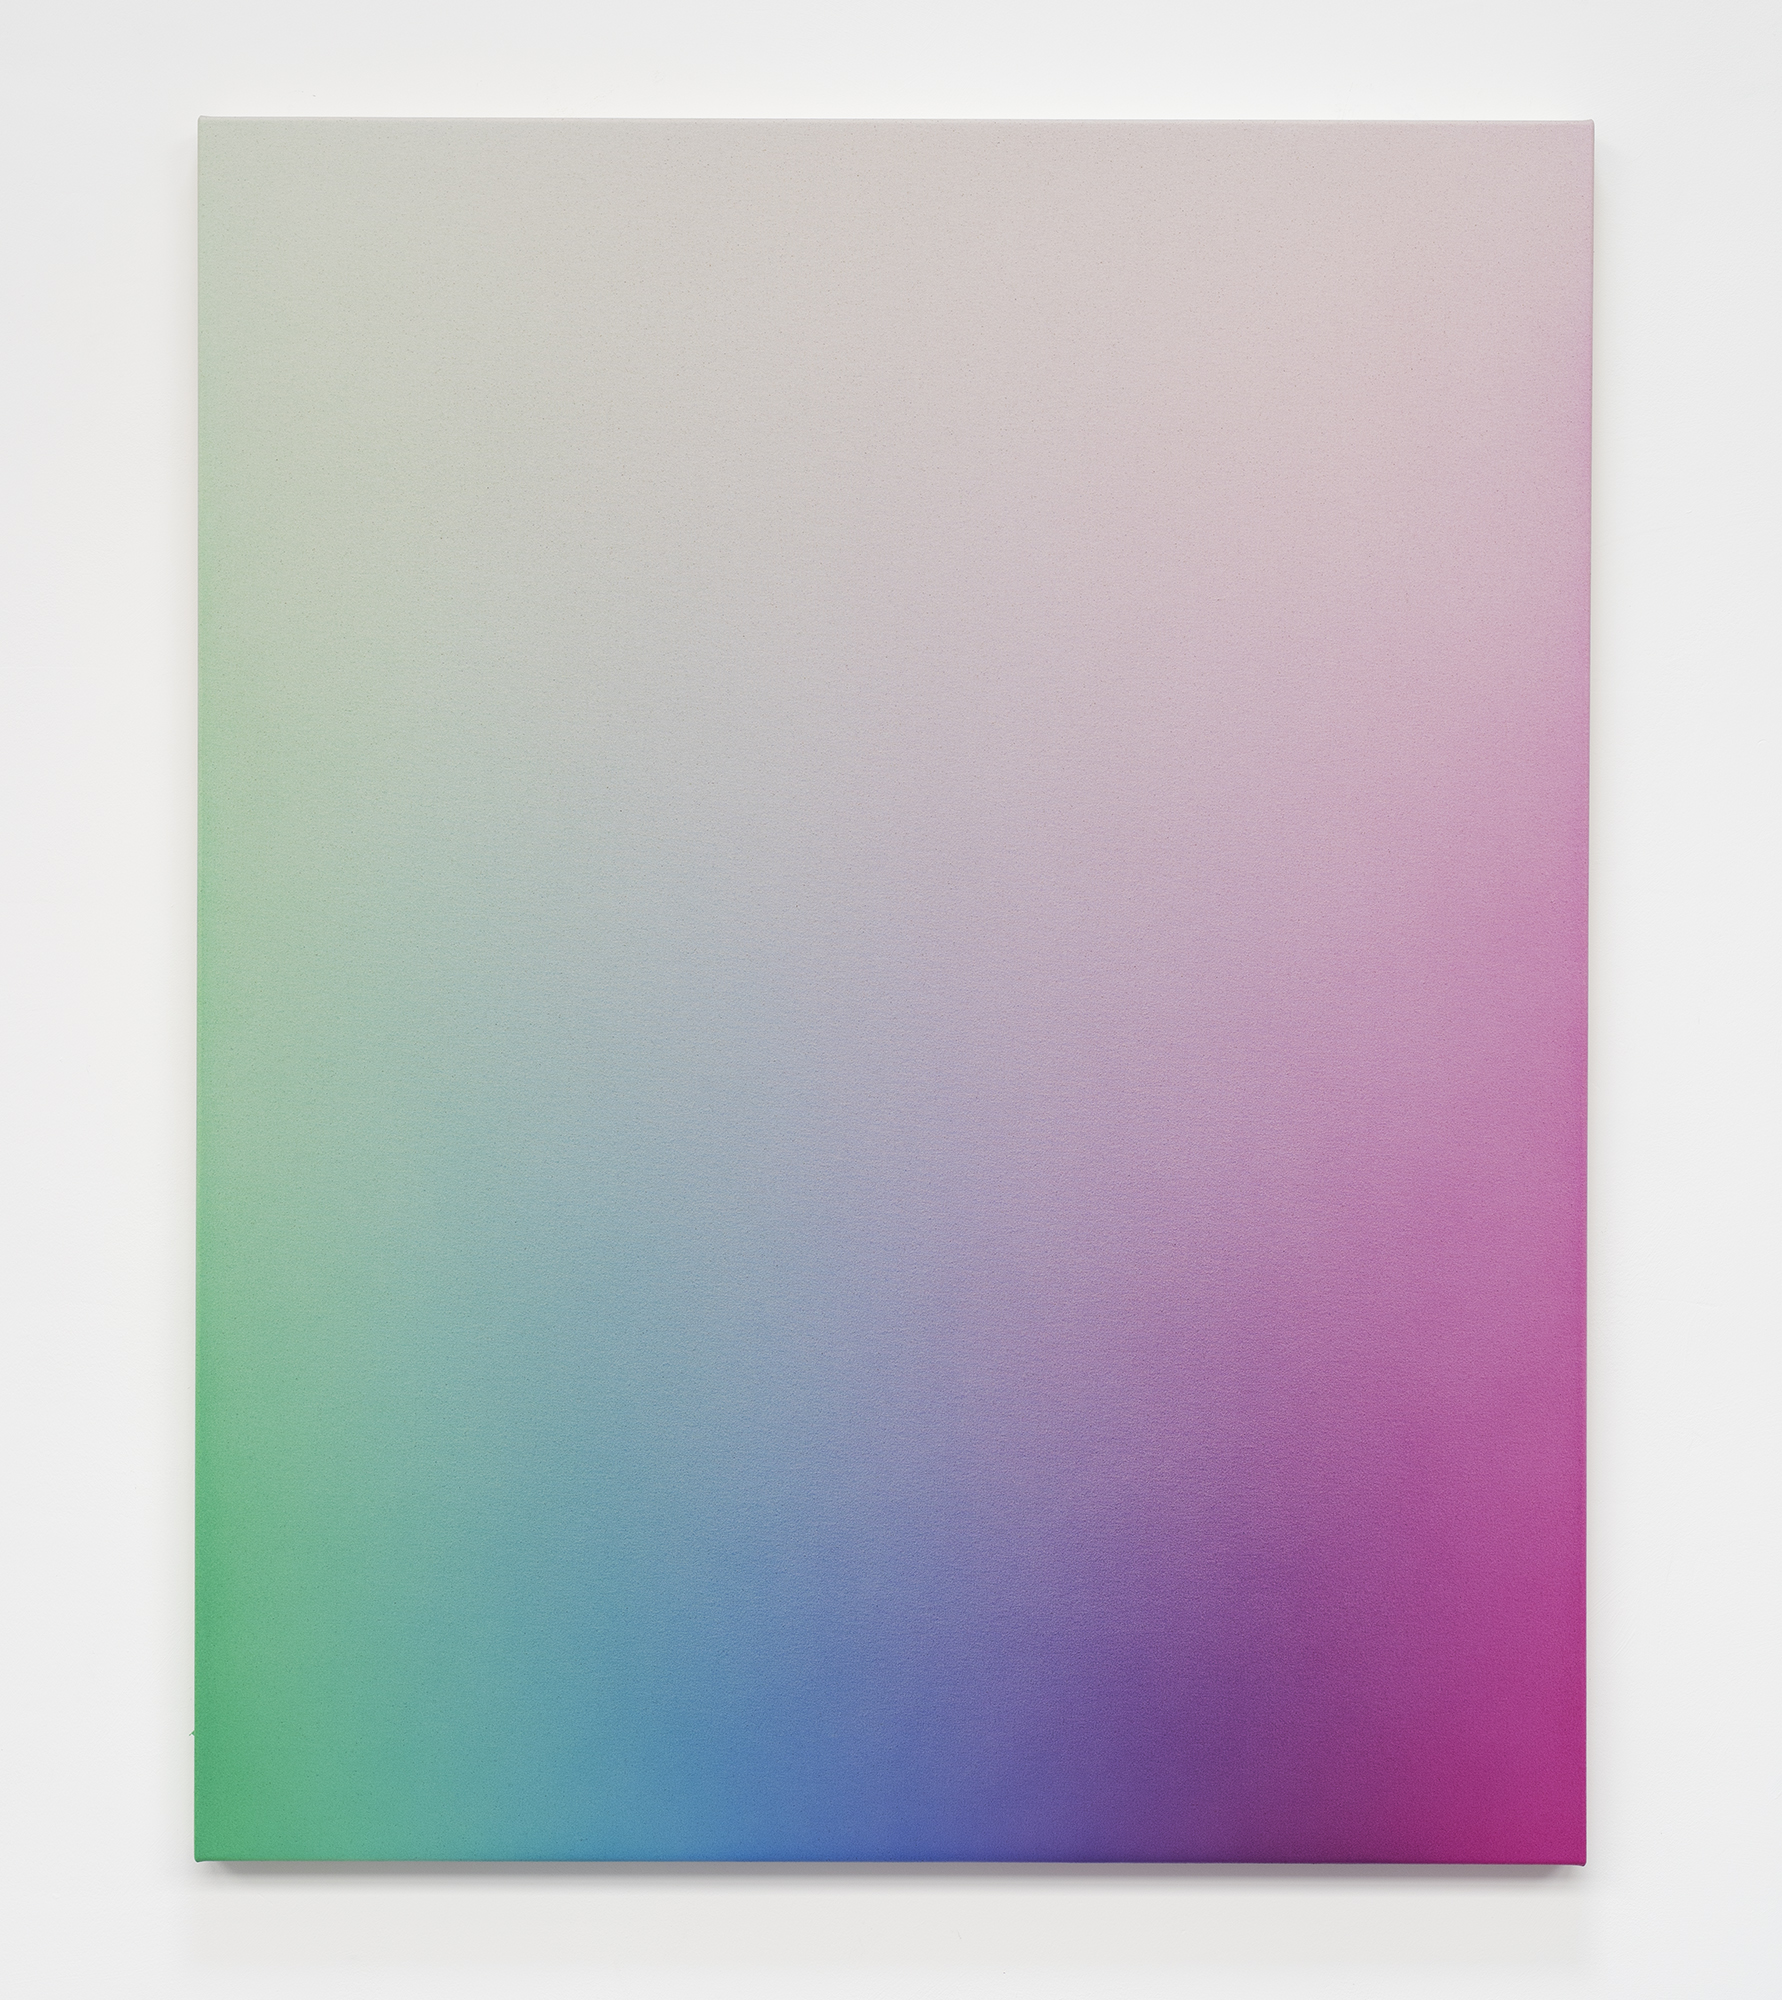 """<p><span class=""""name"""">Oliver Marsden</span><br><em>Spectrum Fade GCBVM II (light)</em><span class='media'>Acrylic on canvas</span>59.06 x 47.2in   150 x 120 cm<br>2017<br><a class='inquire' href='mailto:info@gildargallery.com?subject=Artwork Inquiry OMAR0001&body=I am interested in finding out more about Spectrum Fade GCBVM II (light) by Oliver Marsden'>Inquire</a></p>"""